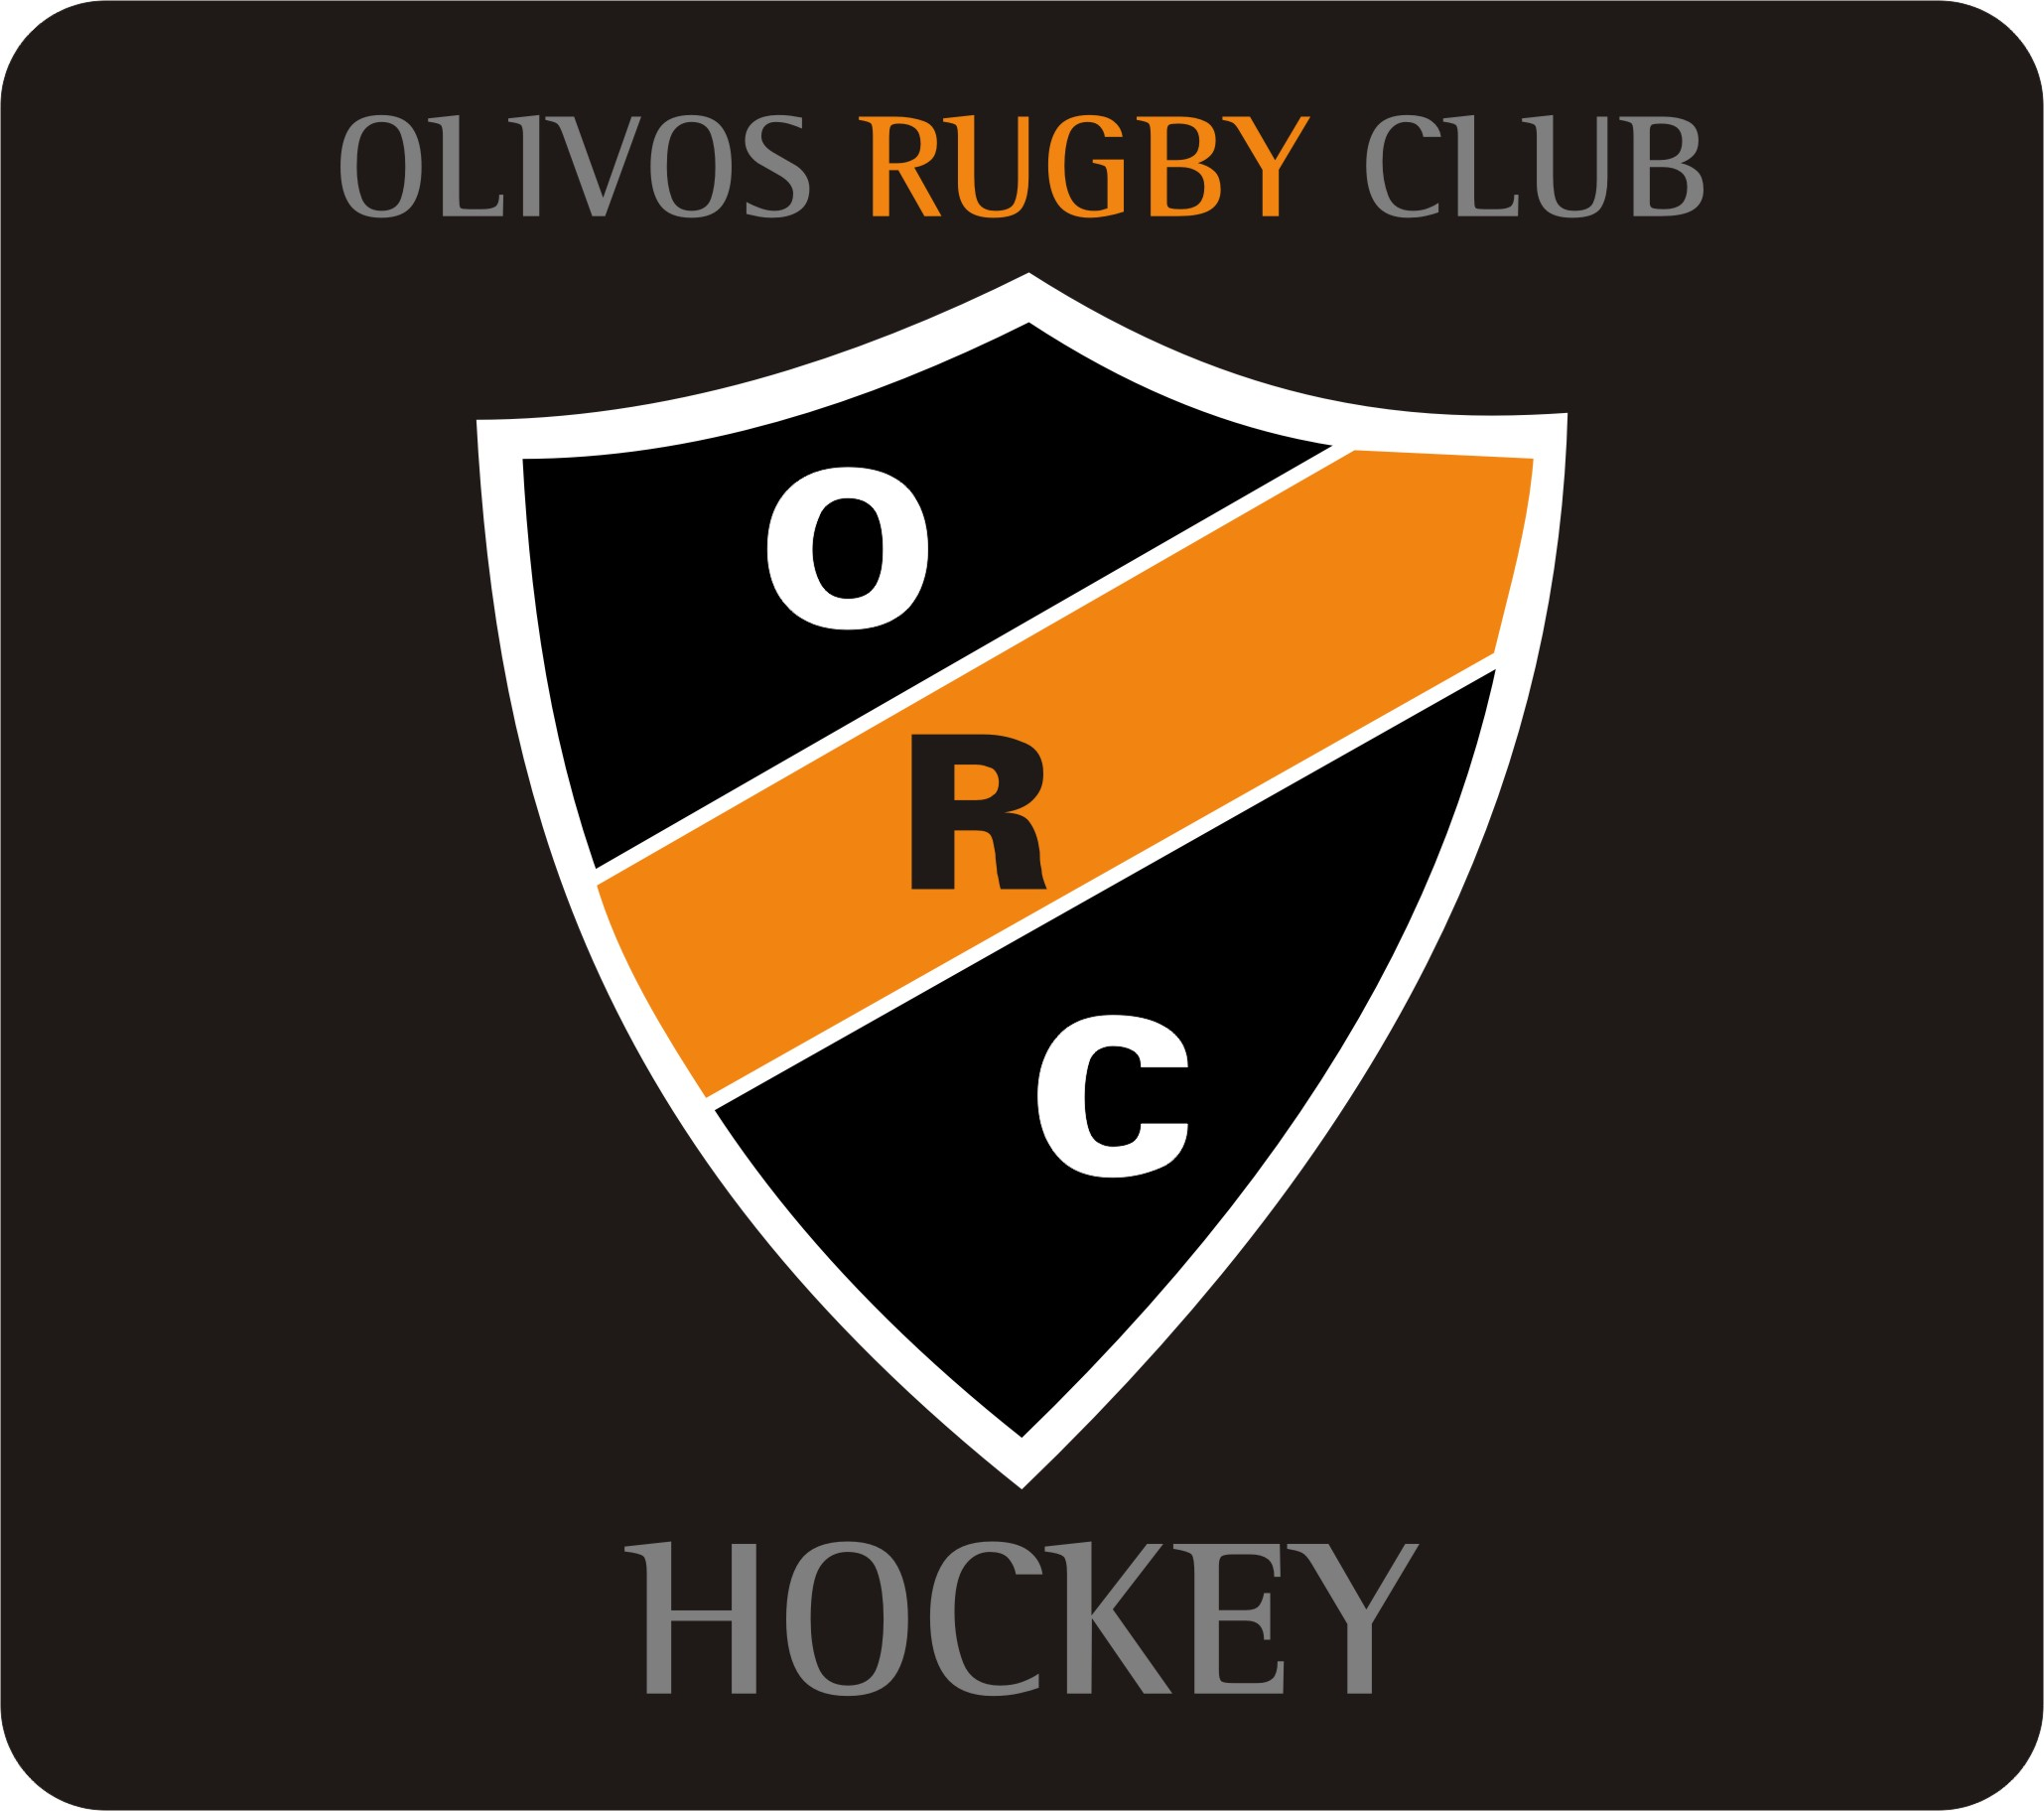 logo_orc_HOCKEY